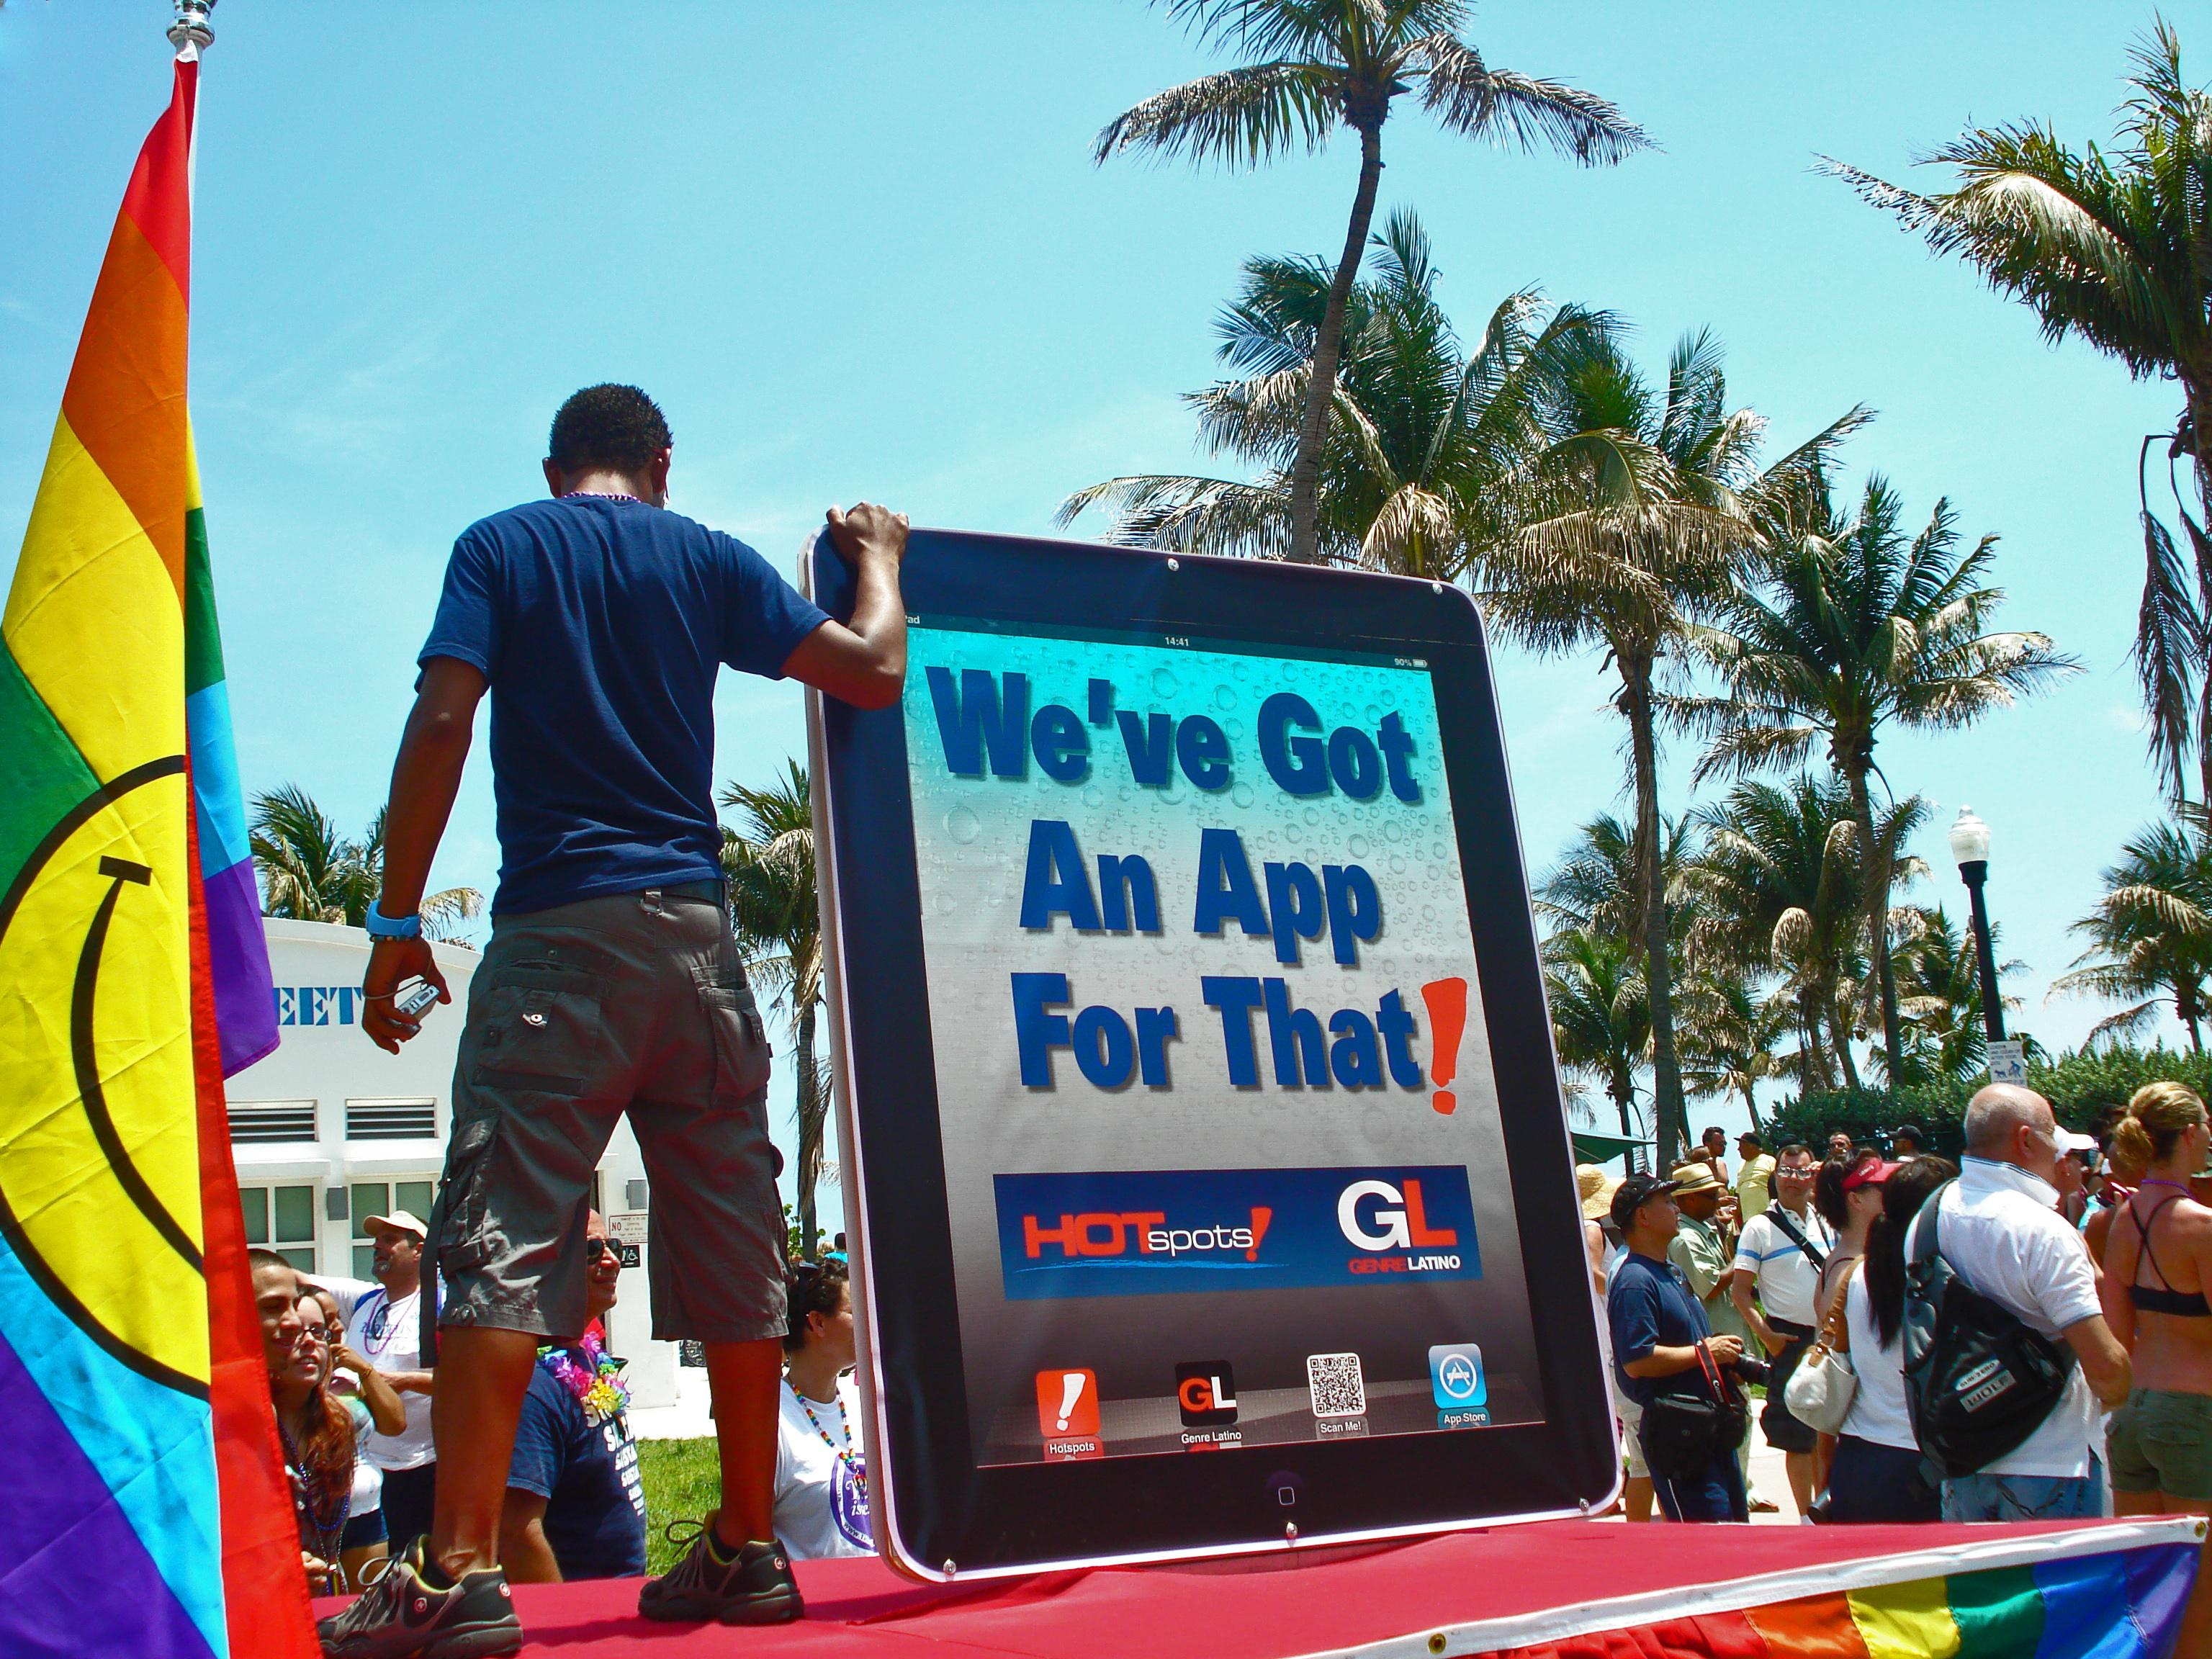 parade-in-south-beach-miami